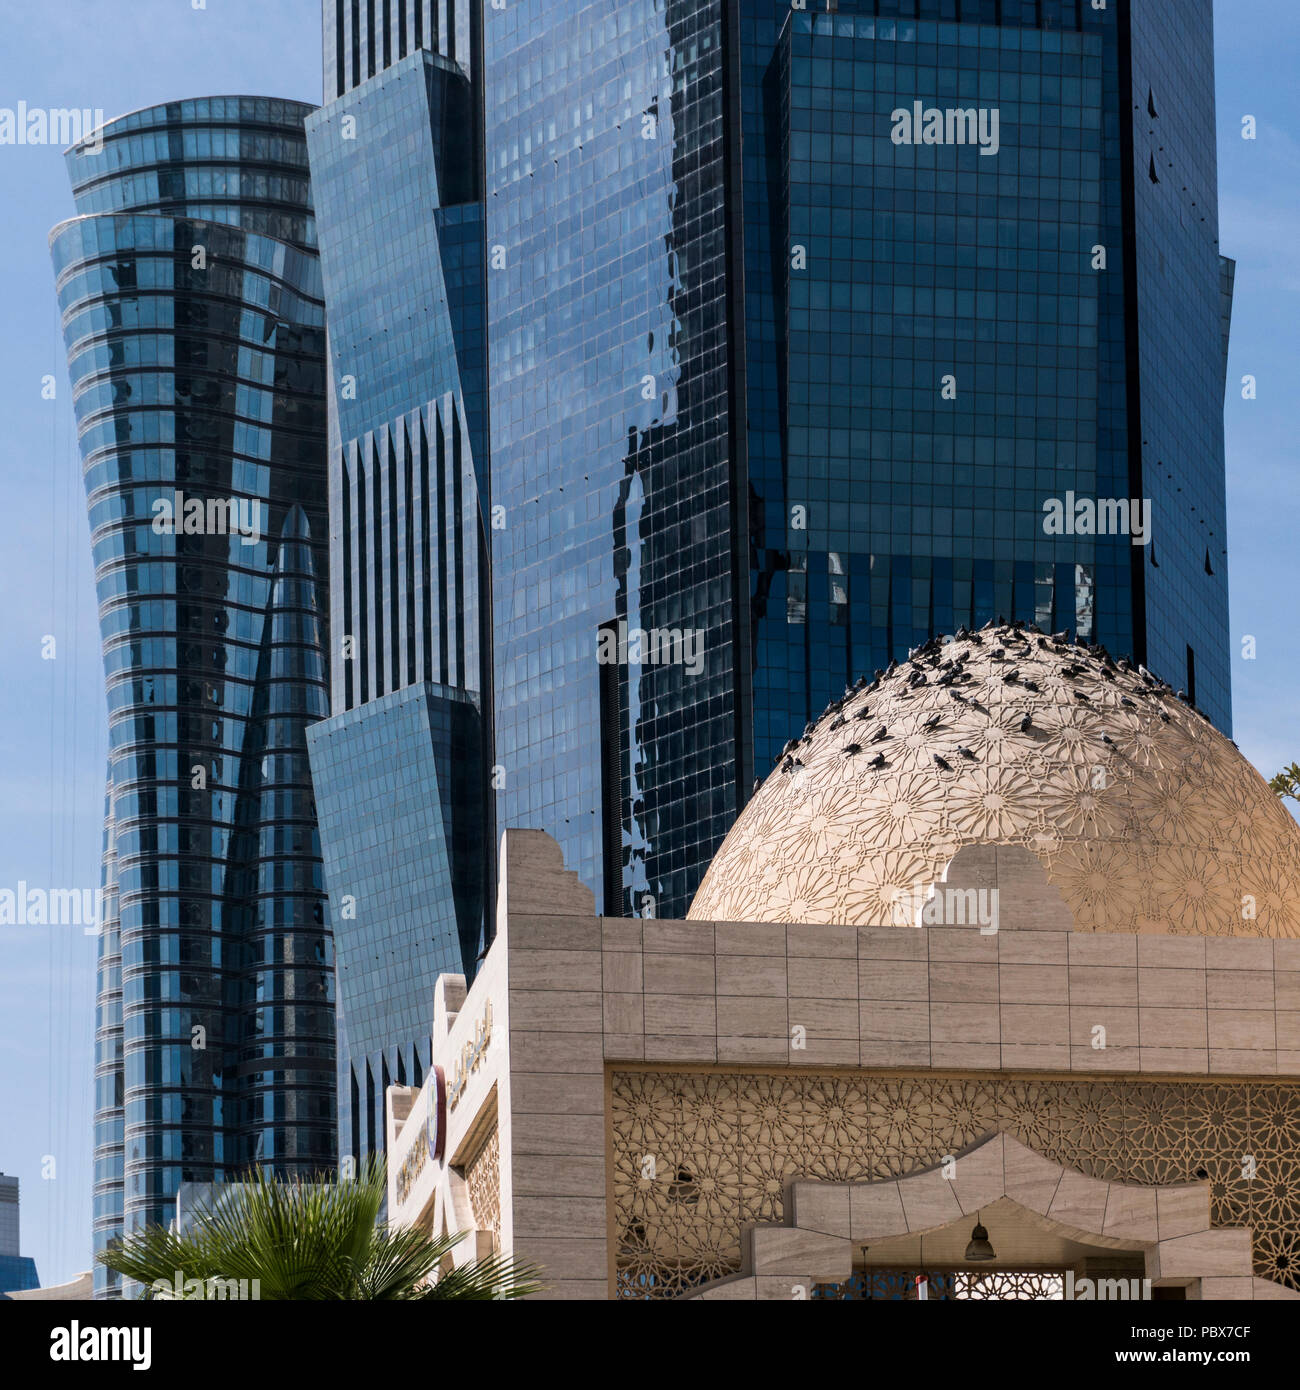 DOHA, QATAR - FEB 2018: Compilation of Mosque Dome and Modern Blue High Skyscrapers in Doha city, Qatar. - Stock Image